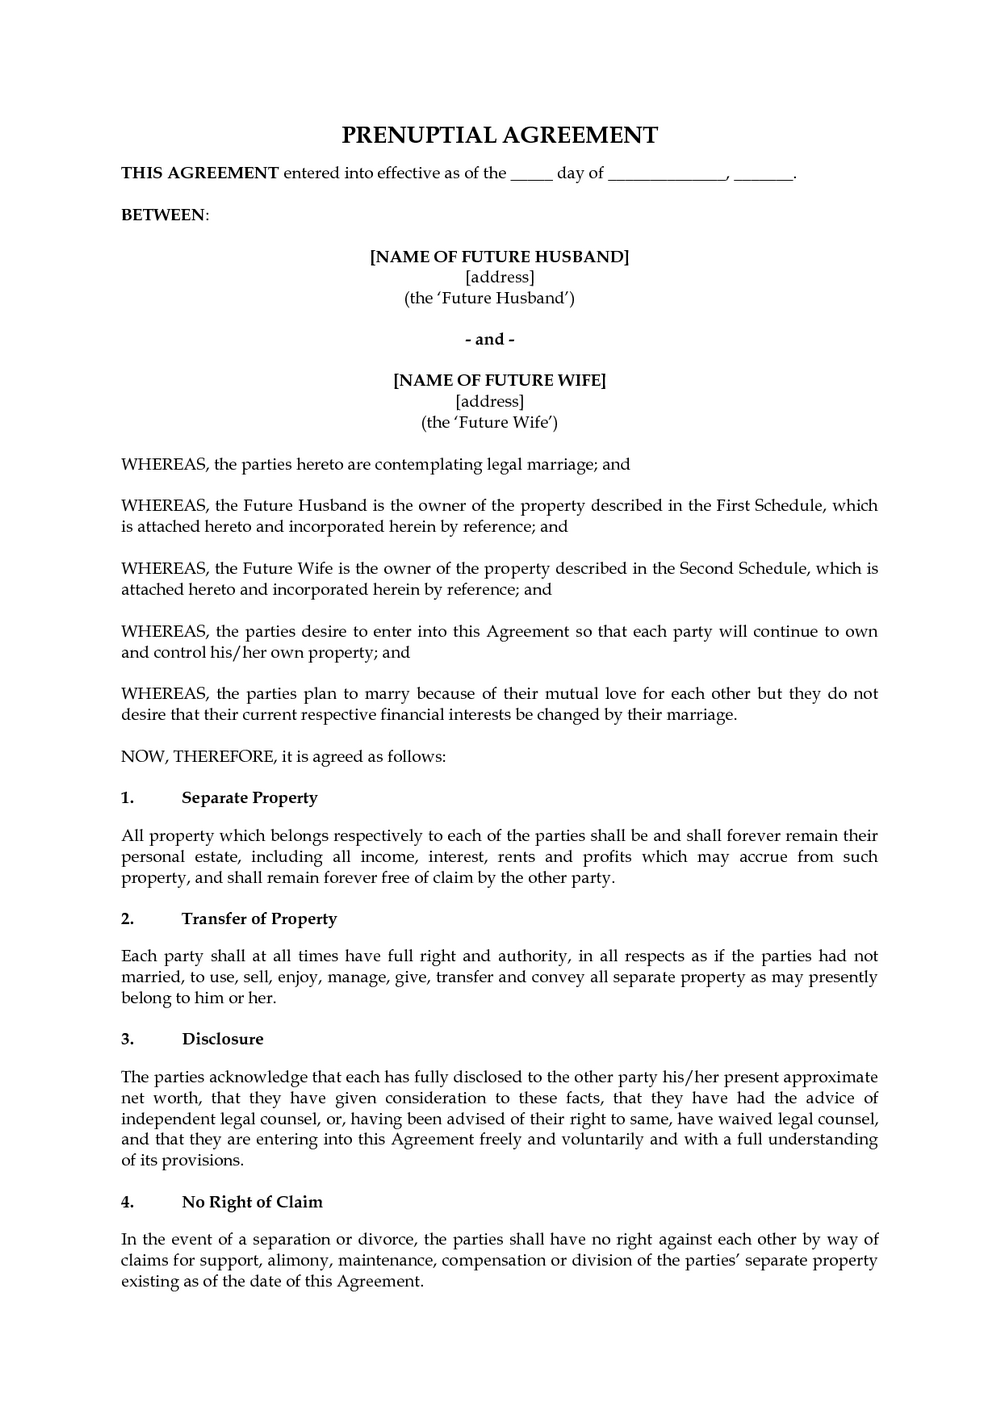 Prenuptial Agreement Form Free Download